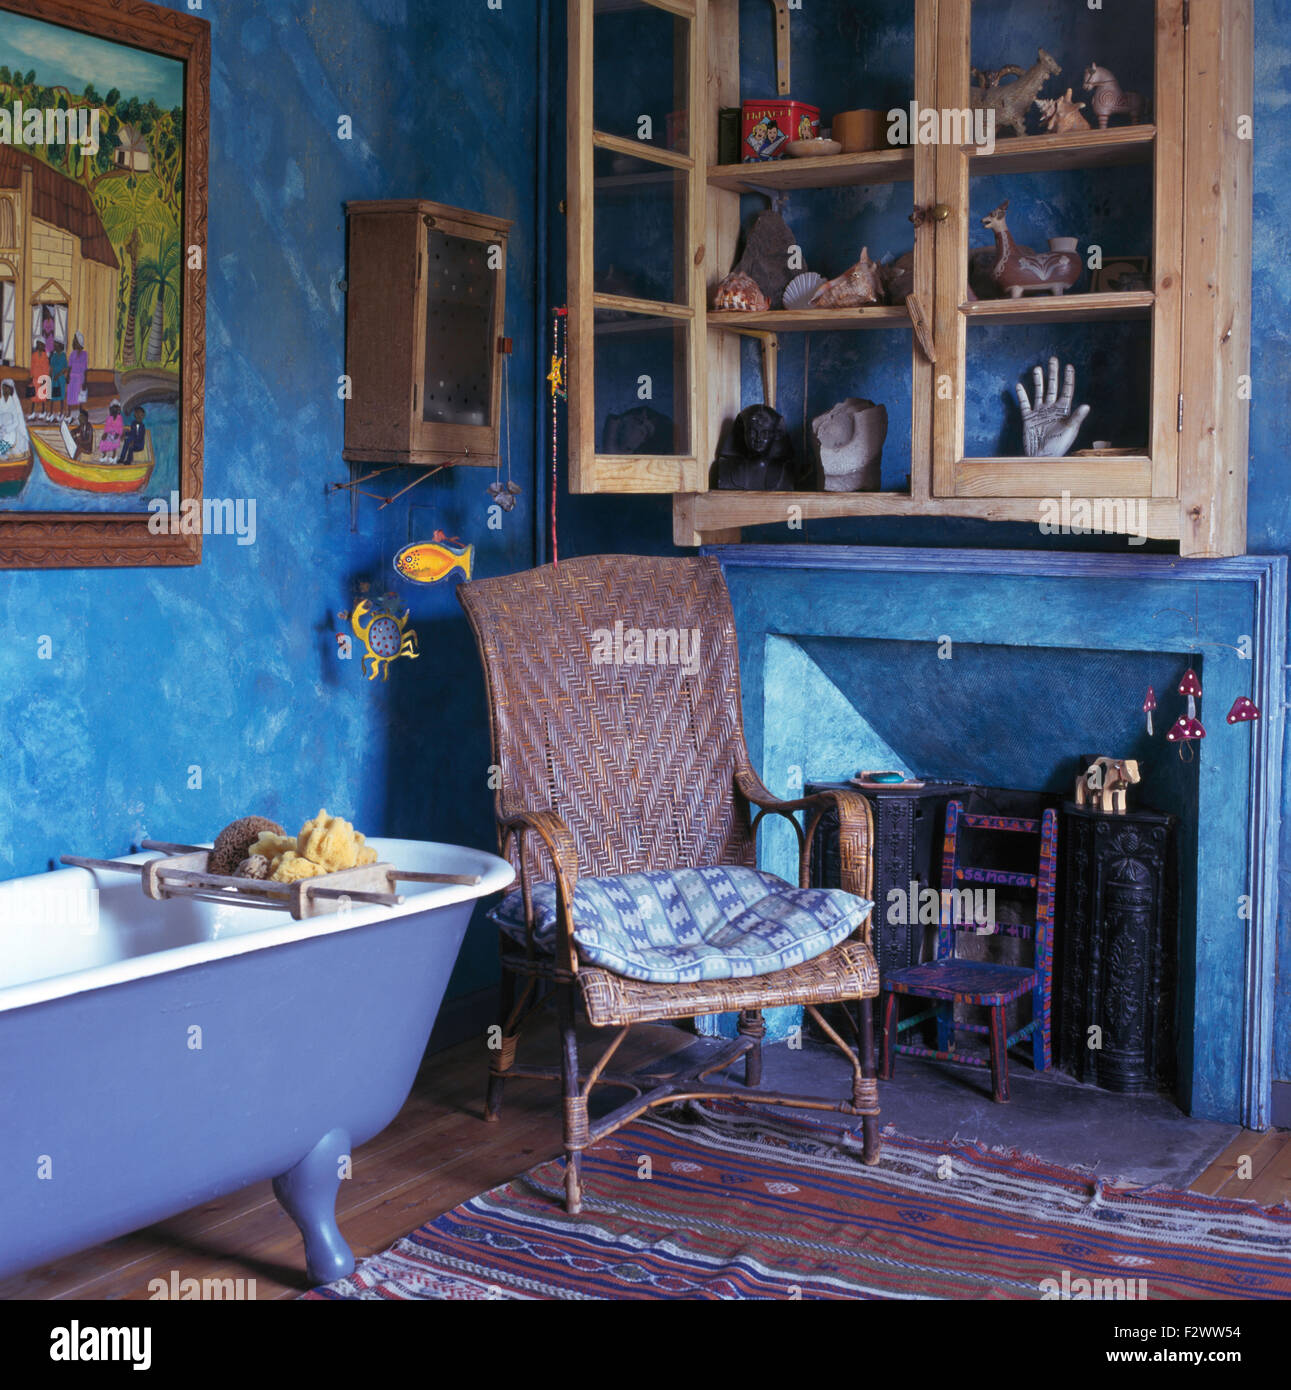 glass front wall cupboard above fireplace and cane chair in blue